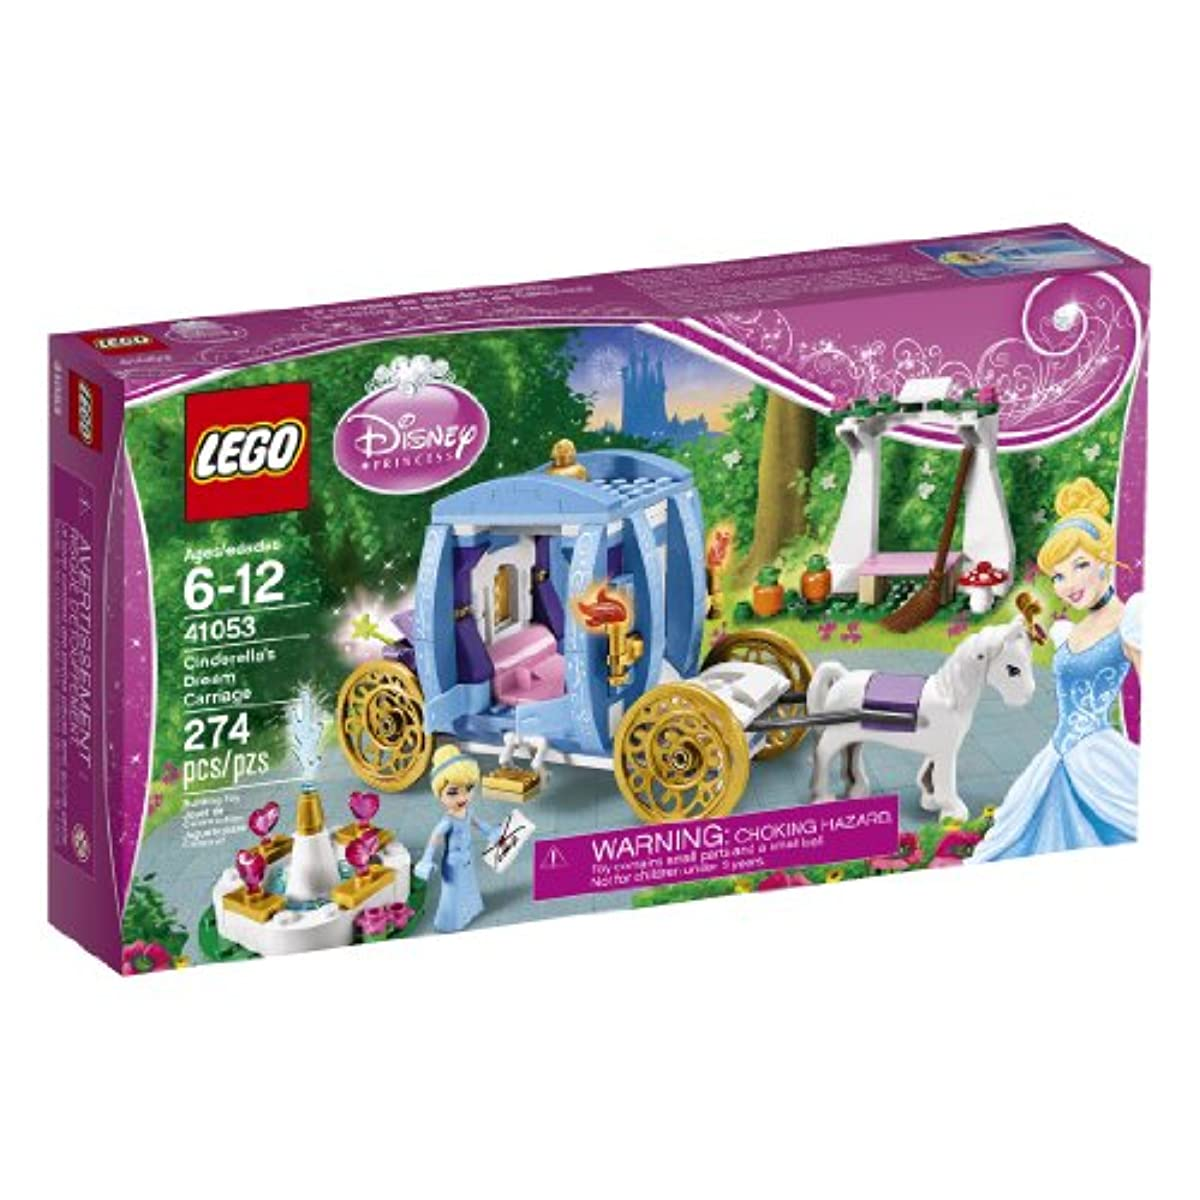 [레고 디즈니공주] LEGO Disney Princess 41053 Cinderella's Dream Carriage